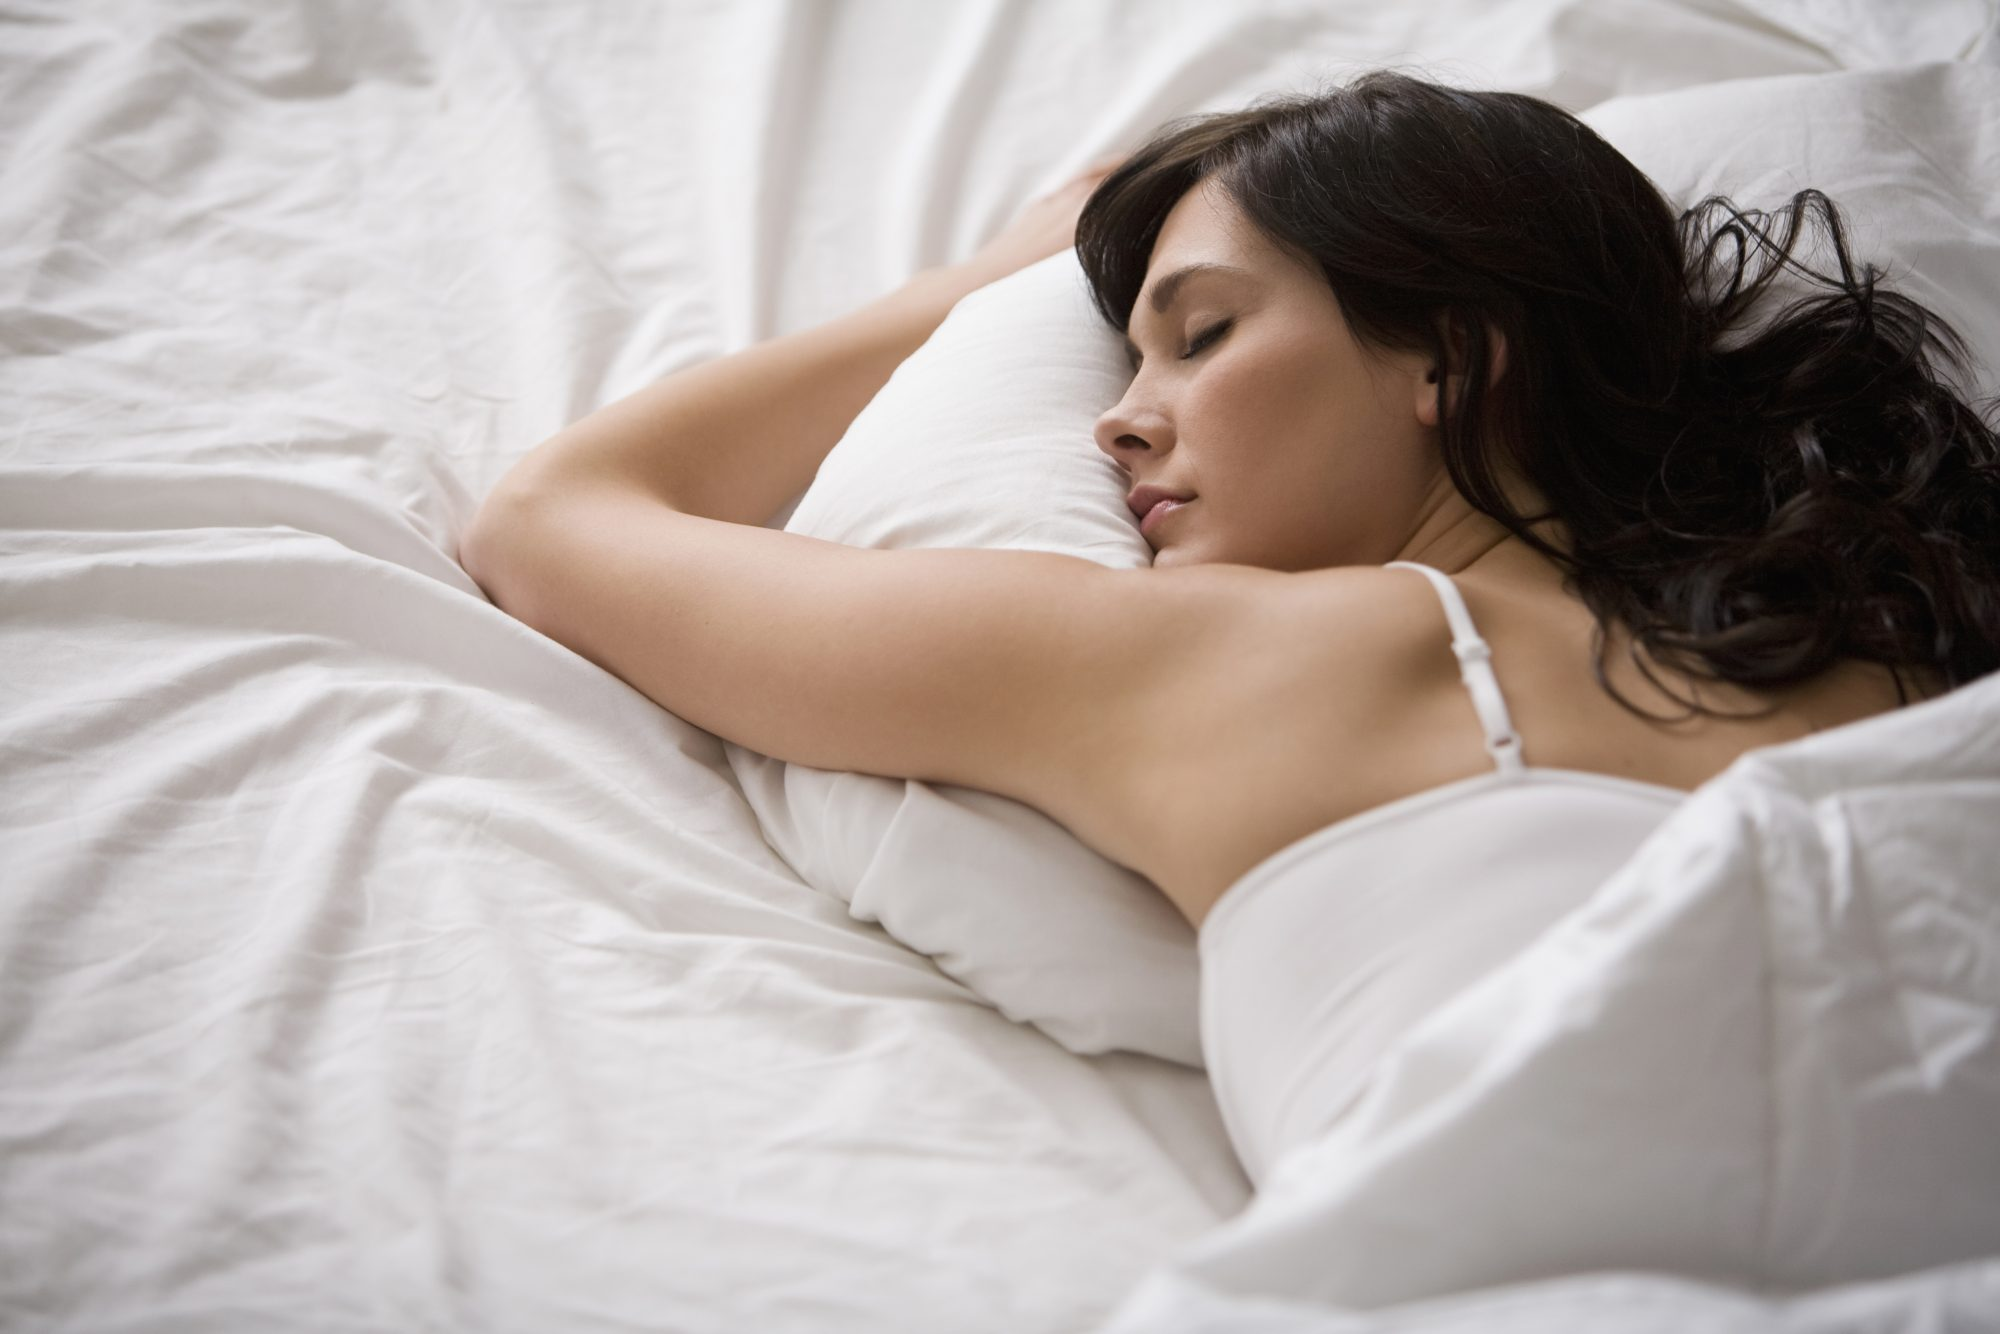 Caucasion Woman Sleeping in Bed